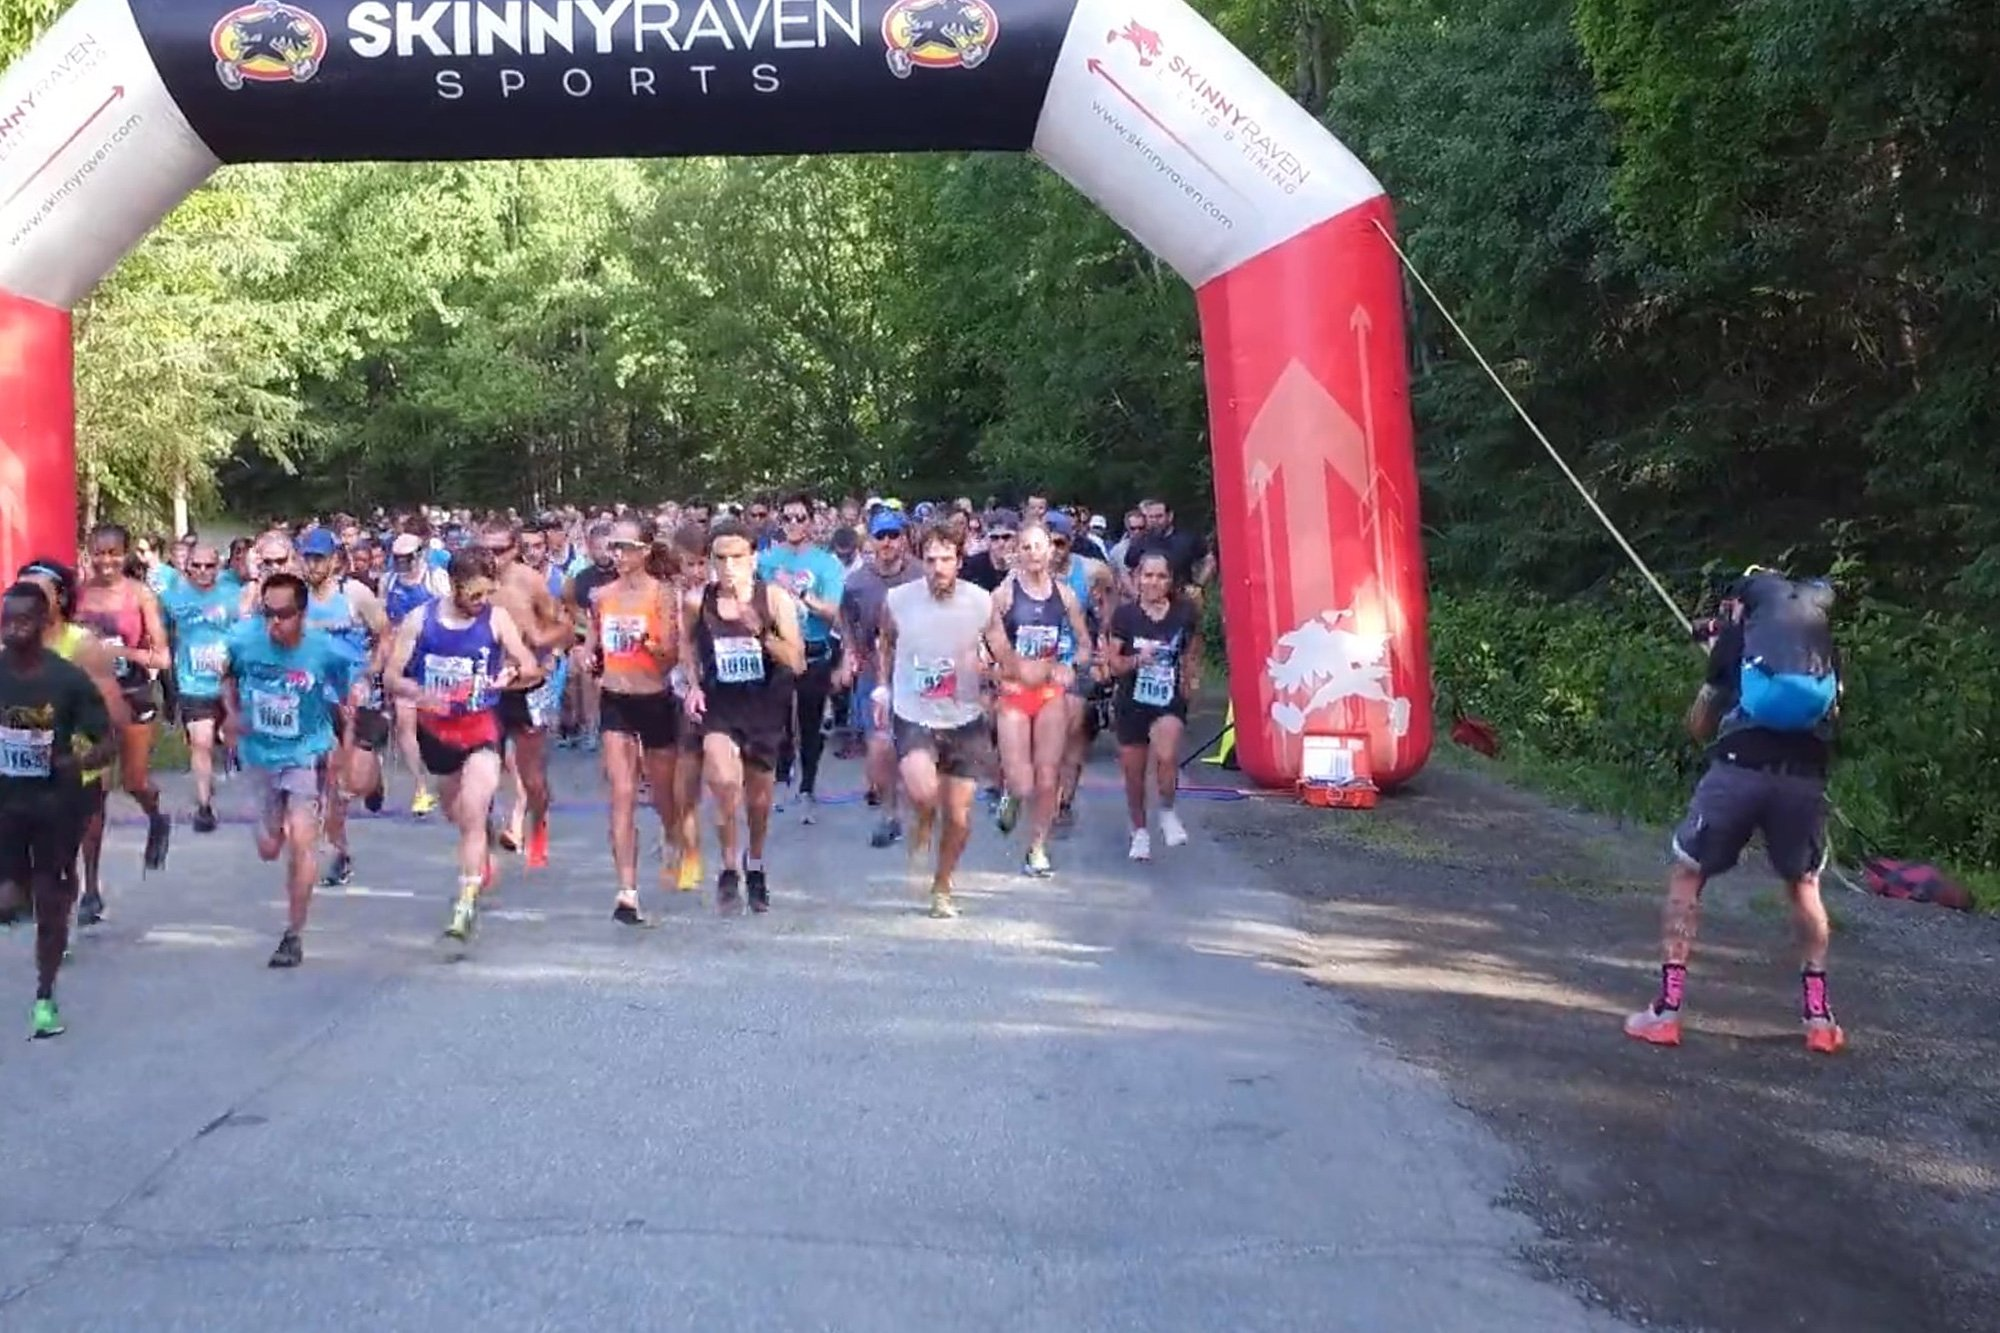 runners at start of race